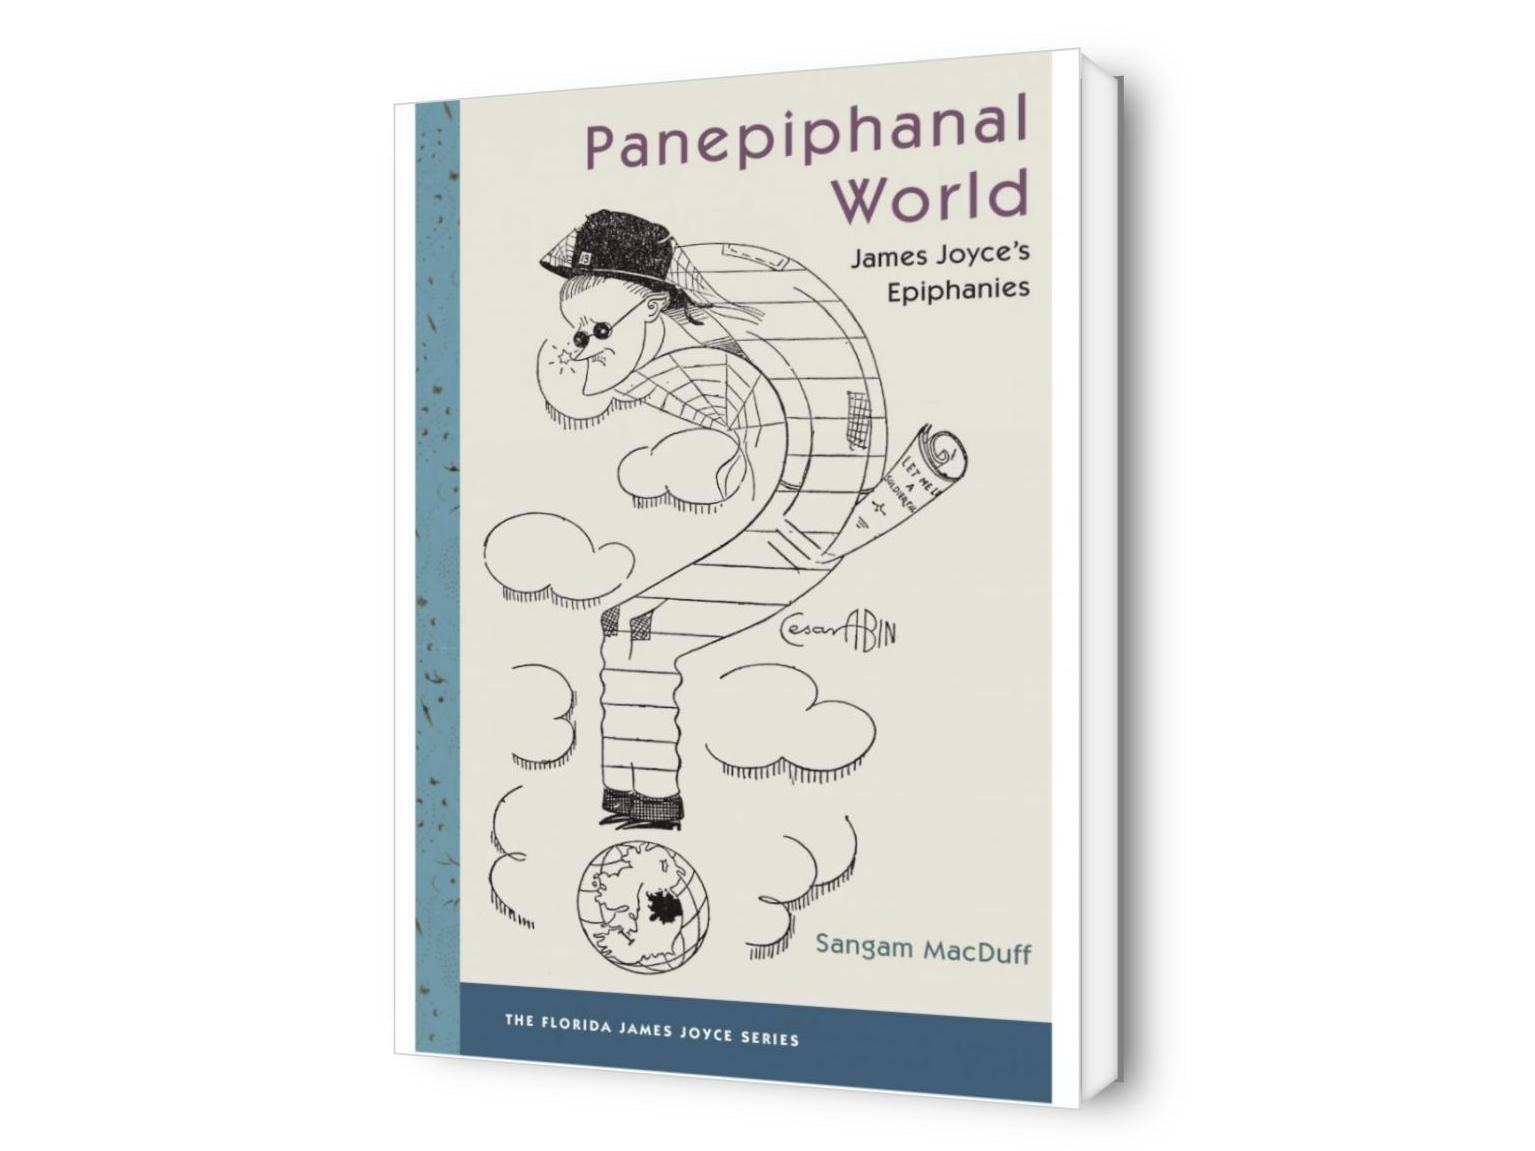 Panepiphanal World: James Joyce's Epiphanies